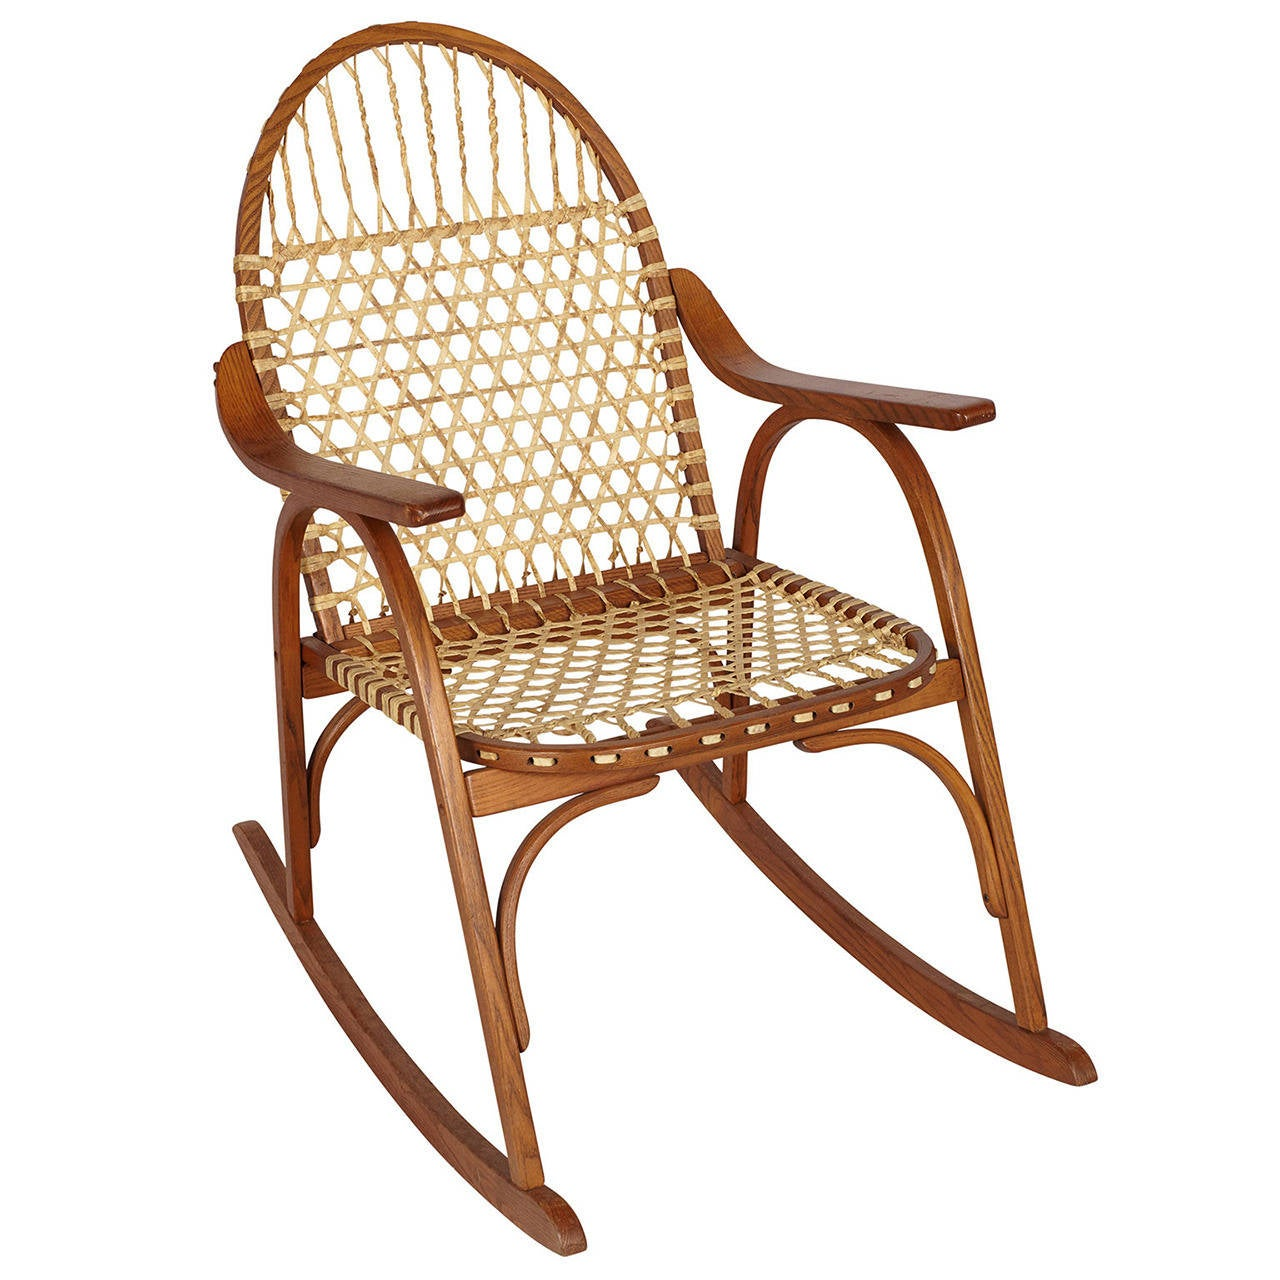 Snowshoe Rocking Chair With Rawhide Lacing For